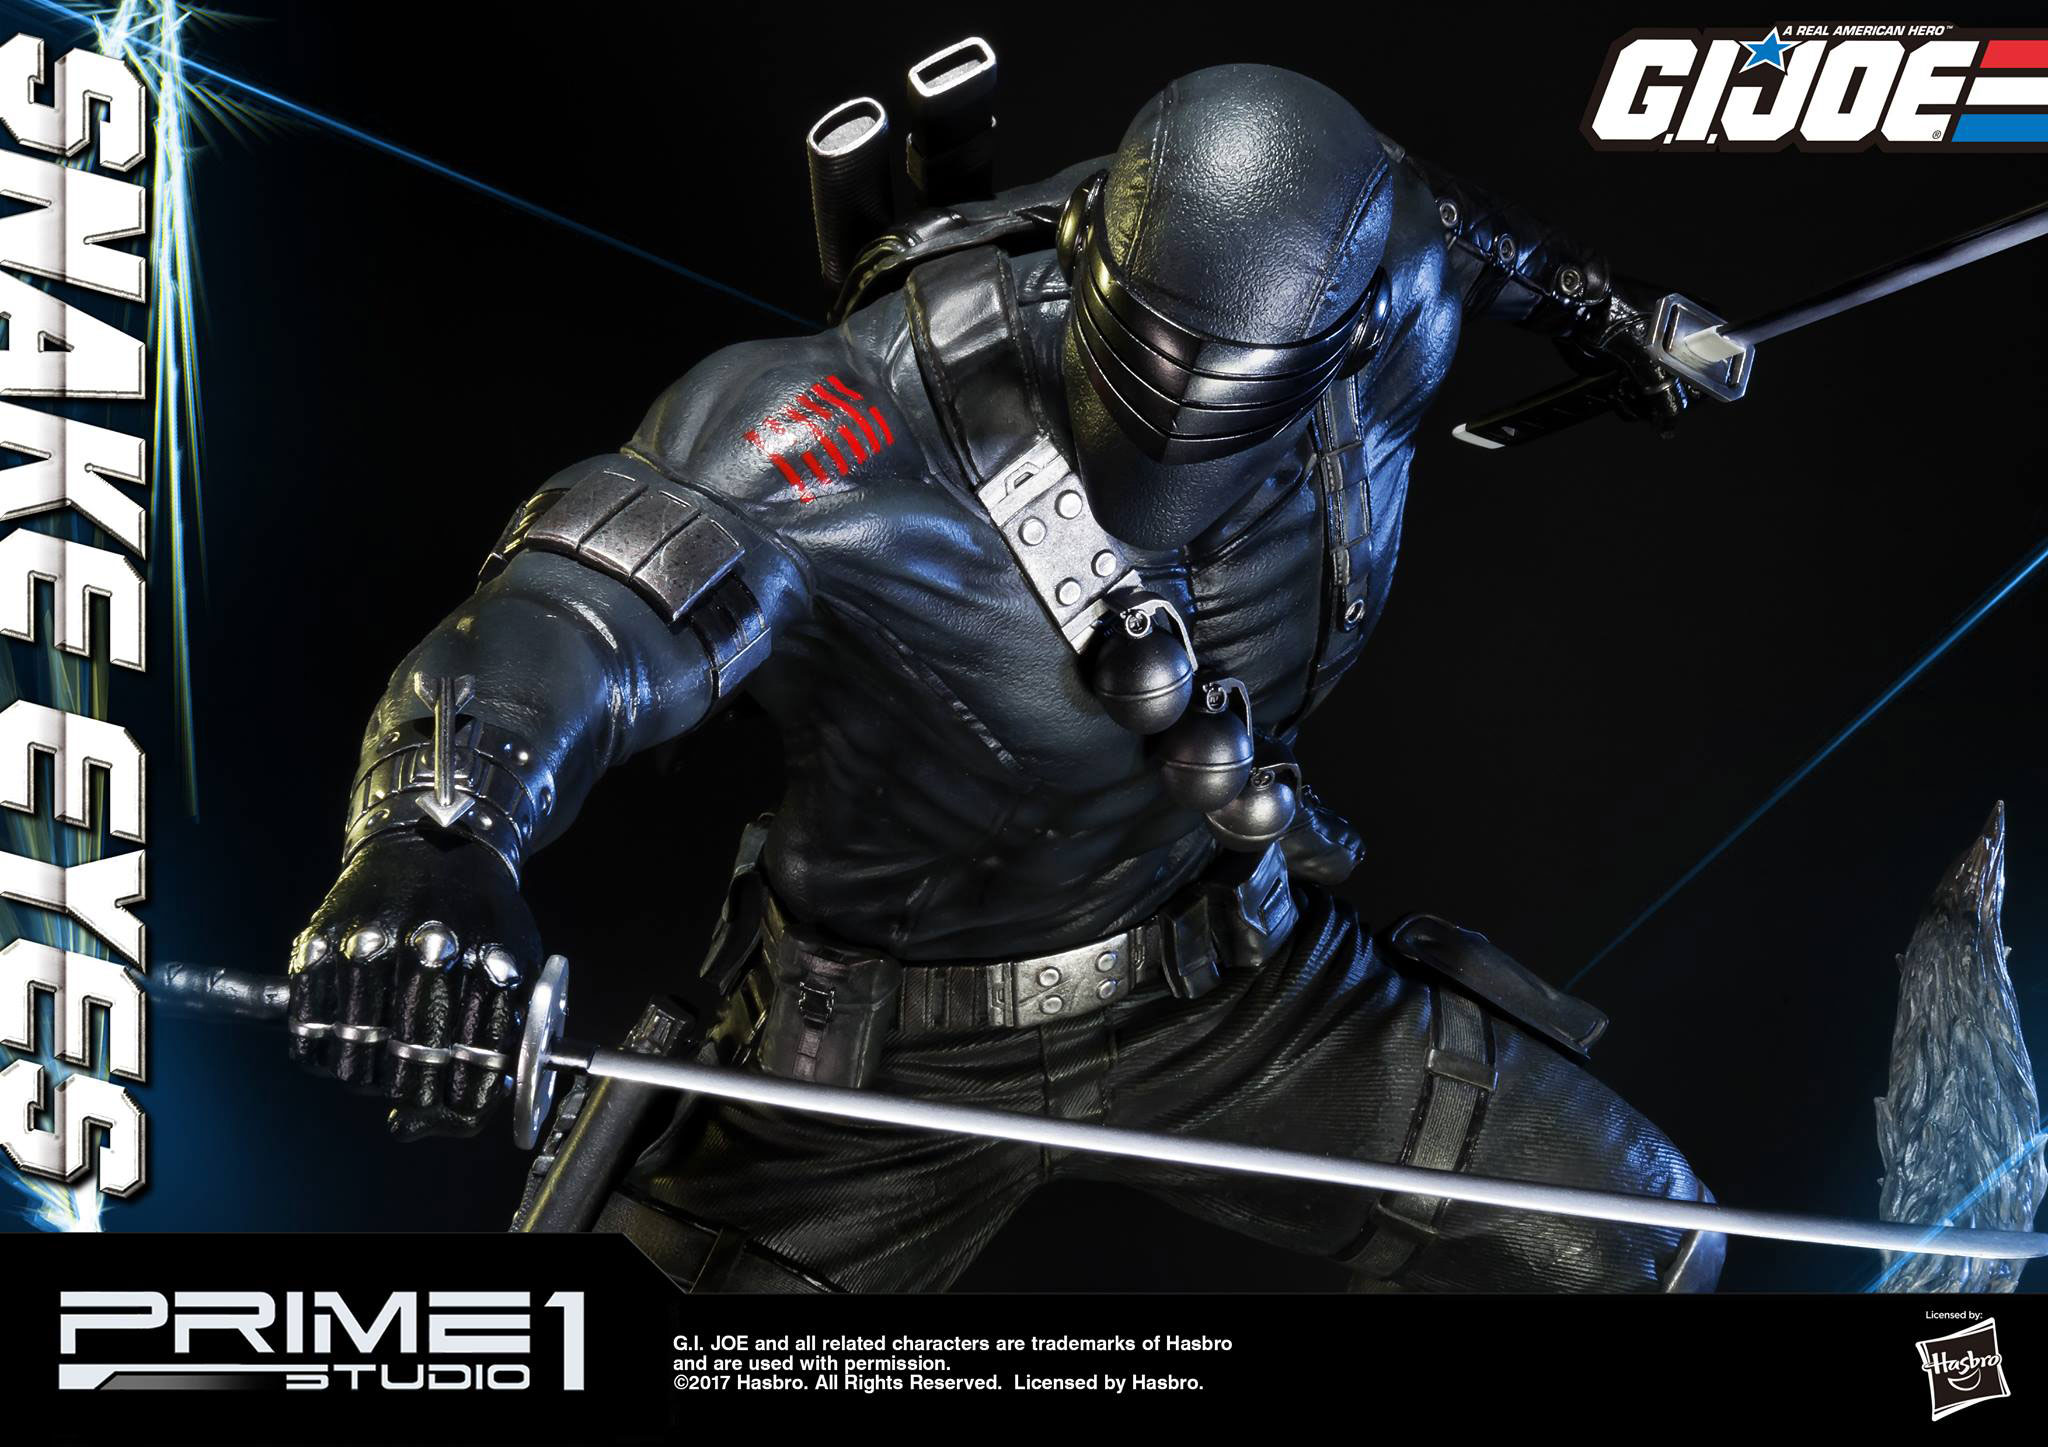 prime-1-studio-snake-eyes-gi-joe-statue-2